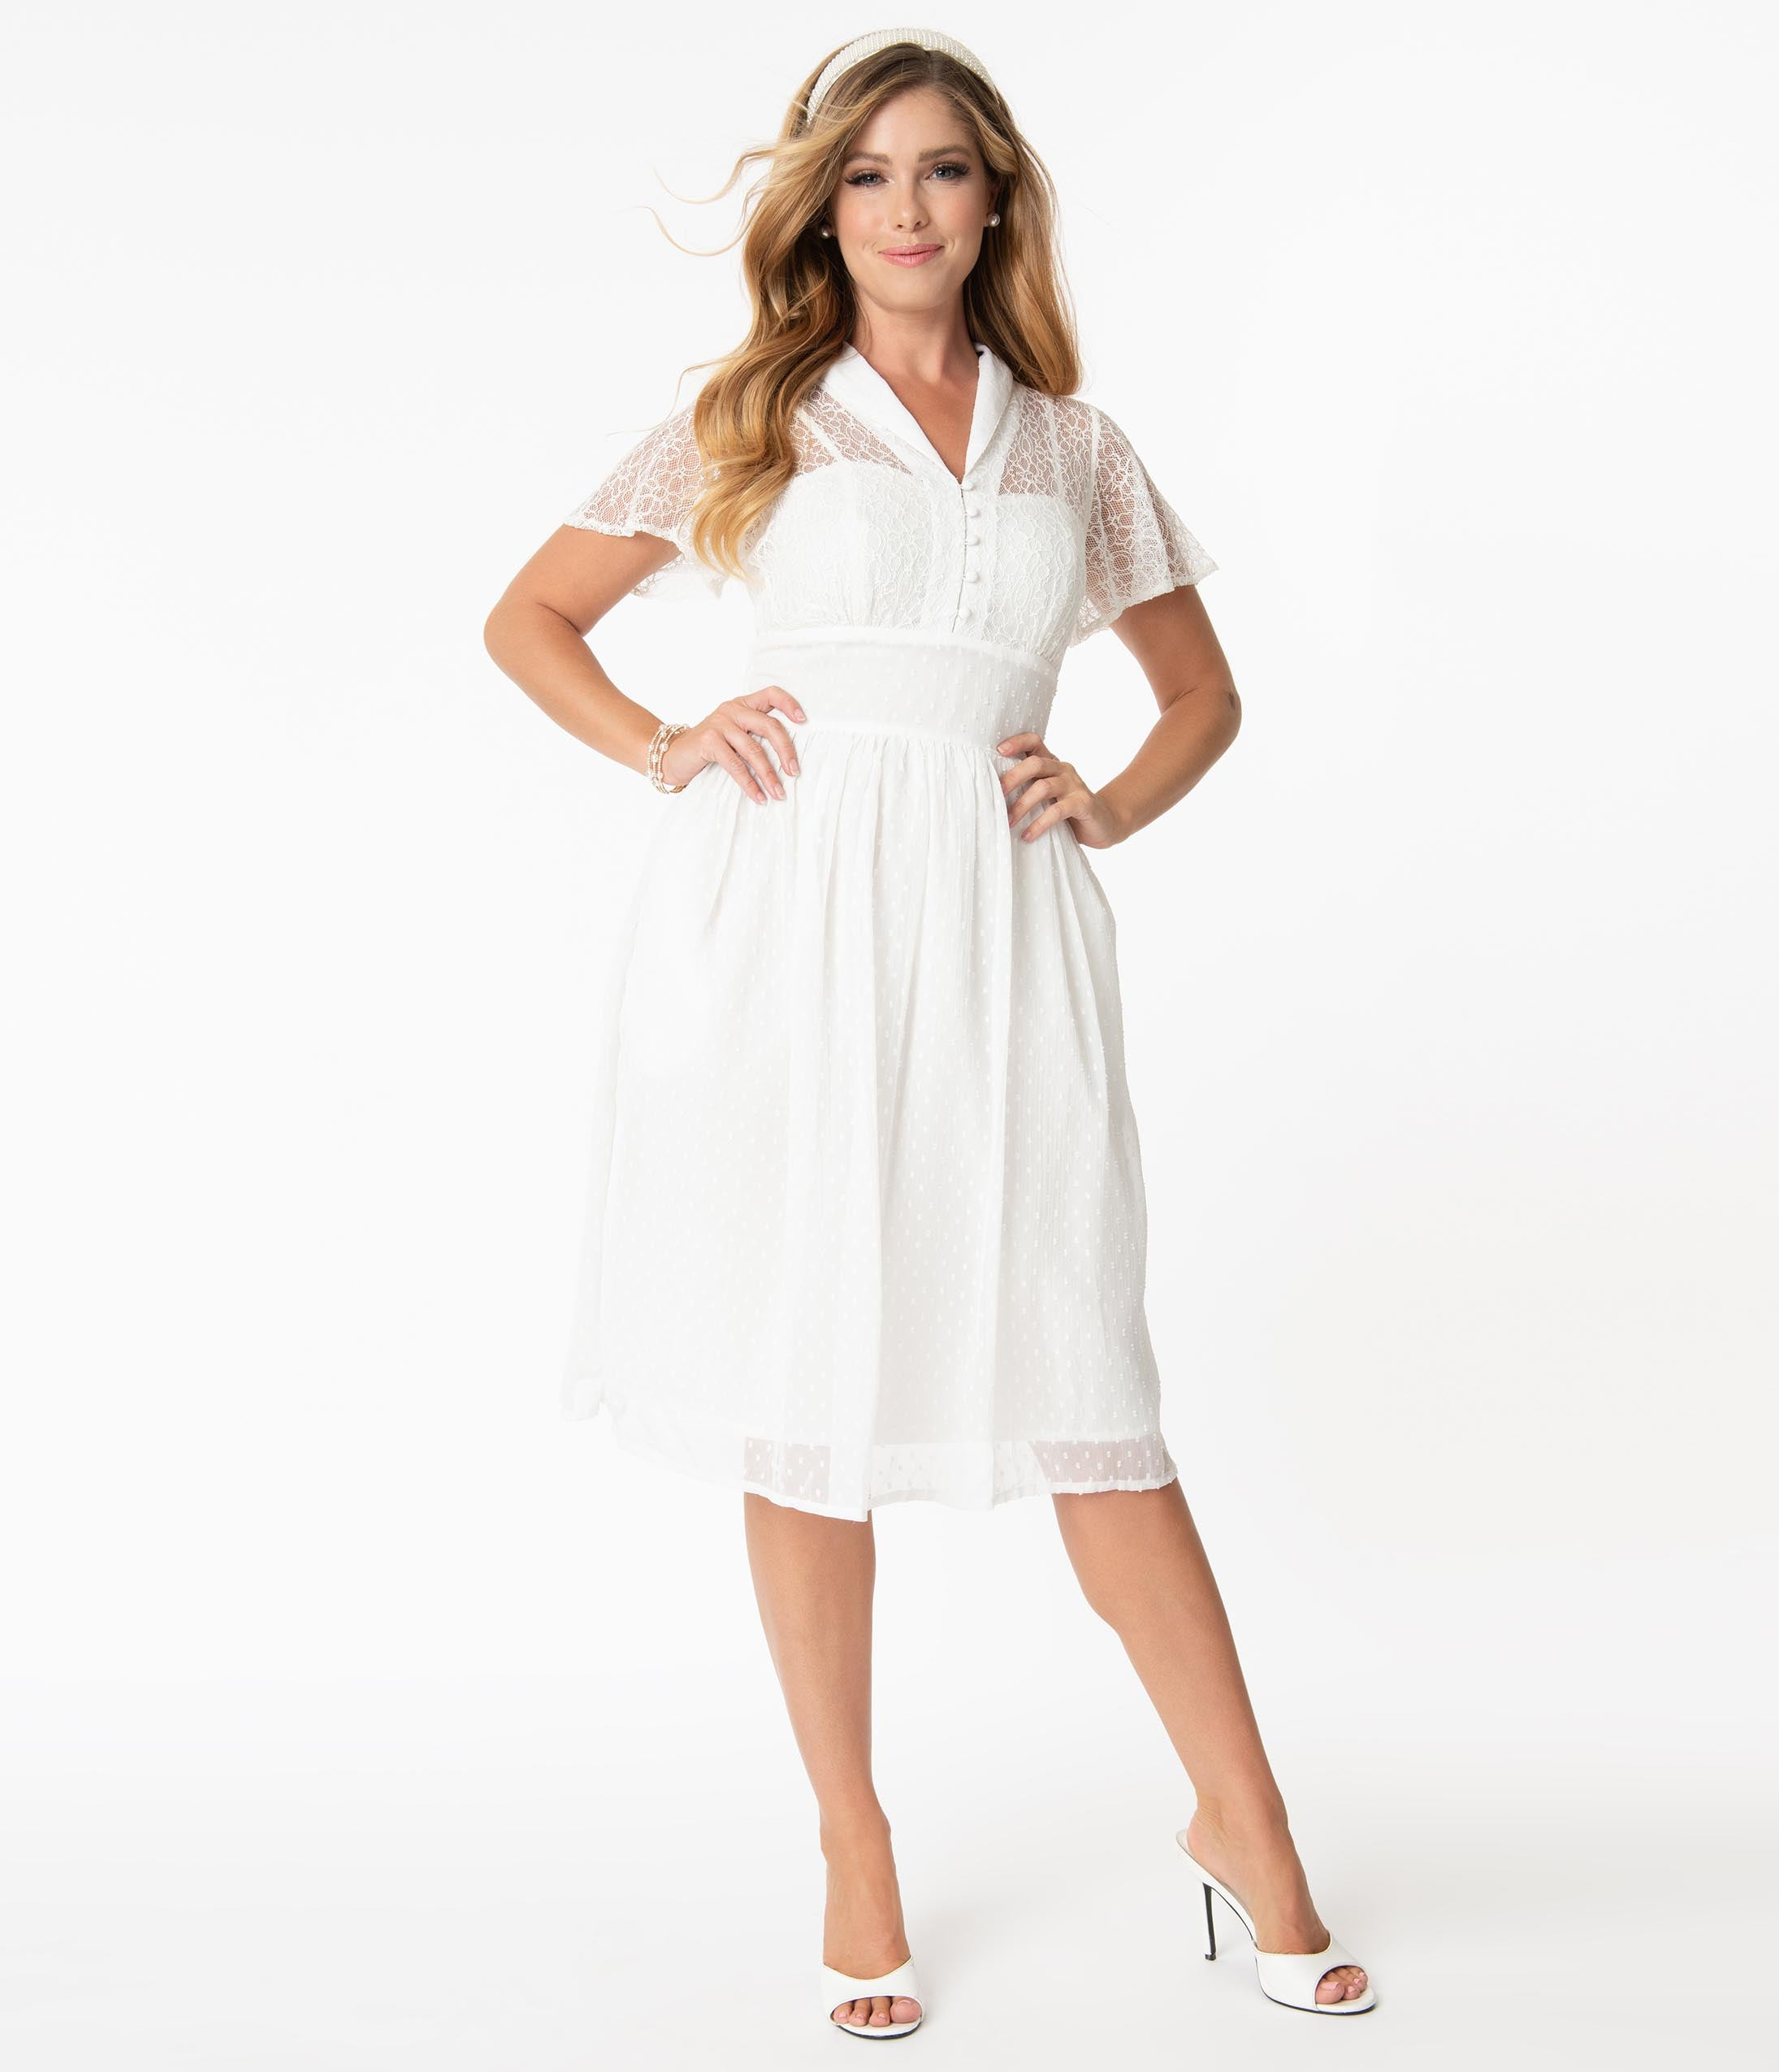 Swing Dance Clothing You Can Dance In Vintage Style White Lace  Flocked Naomi Swing Dress $92.00 AT vintagedancer.com